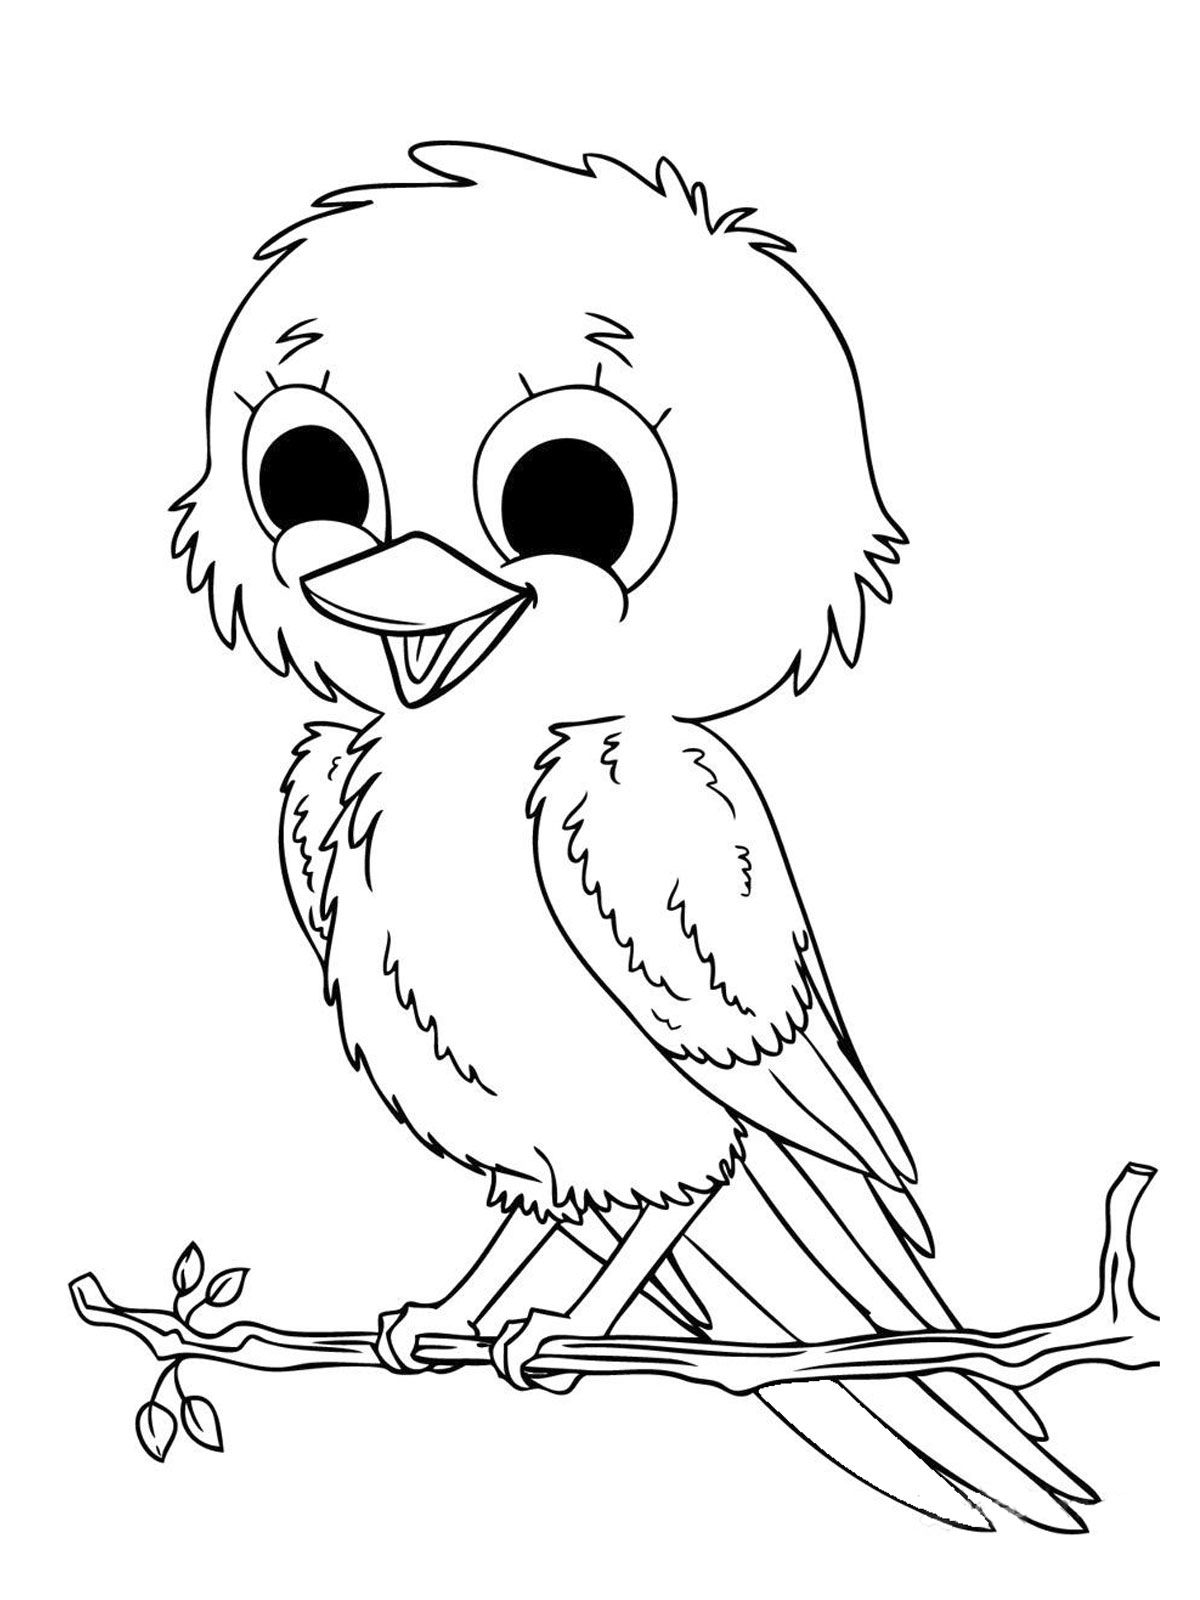 Online coloring pages for children to print - Pictures Baby Sparrow Birds Coloring Pages Bird Coloring Pages Kidsdrawing Free Coloring Pages Online